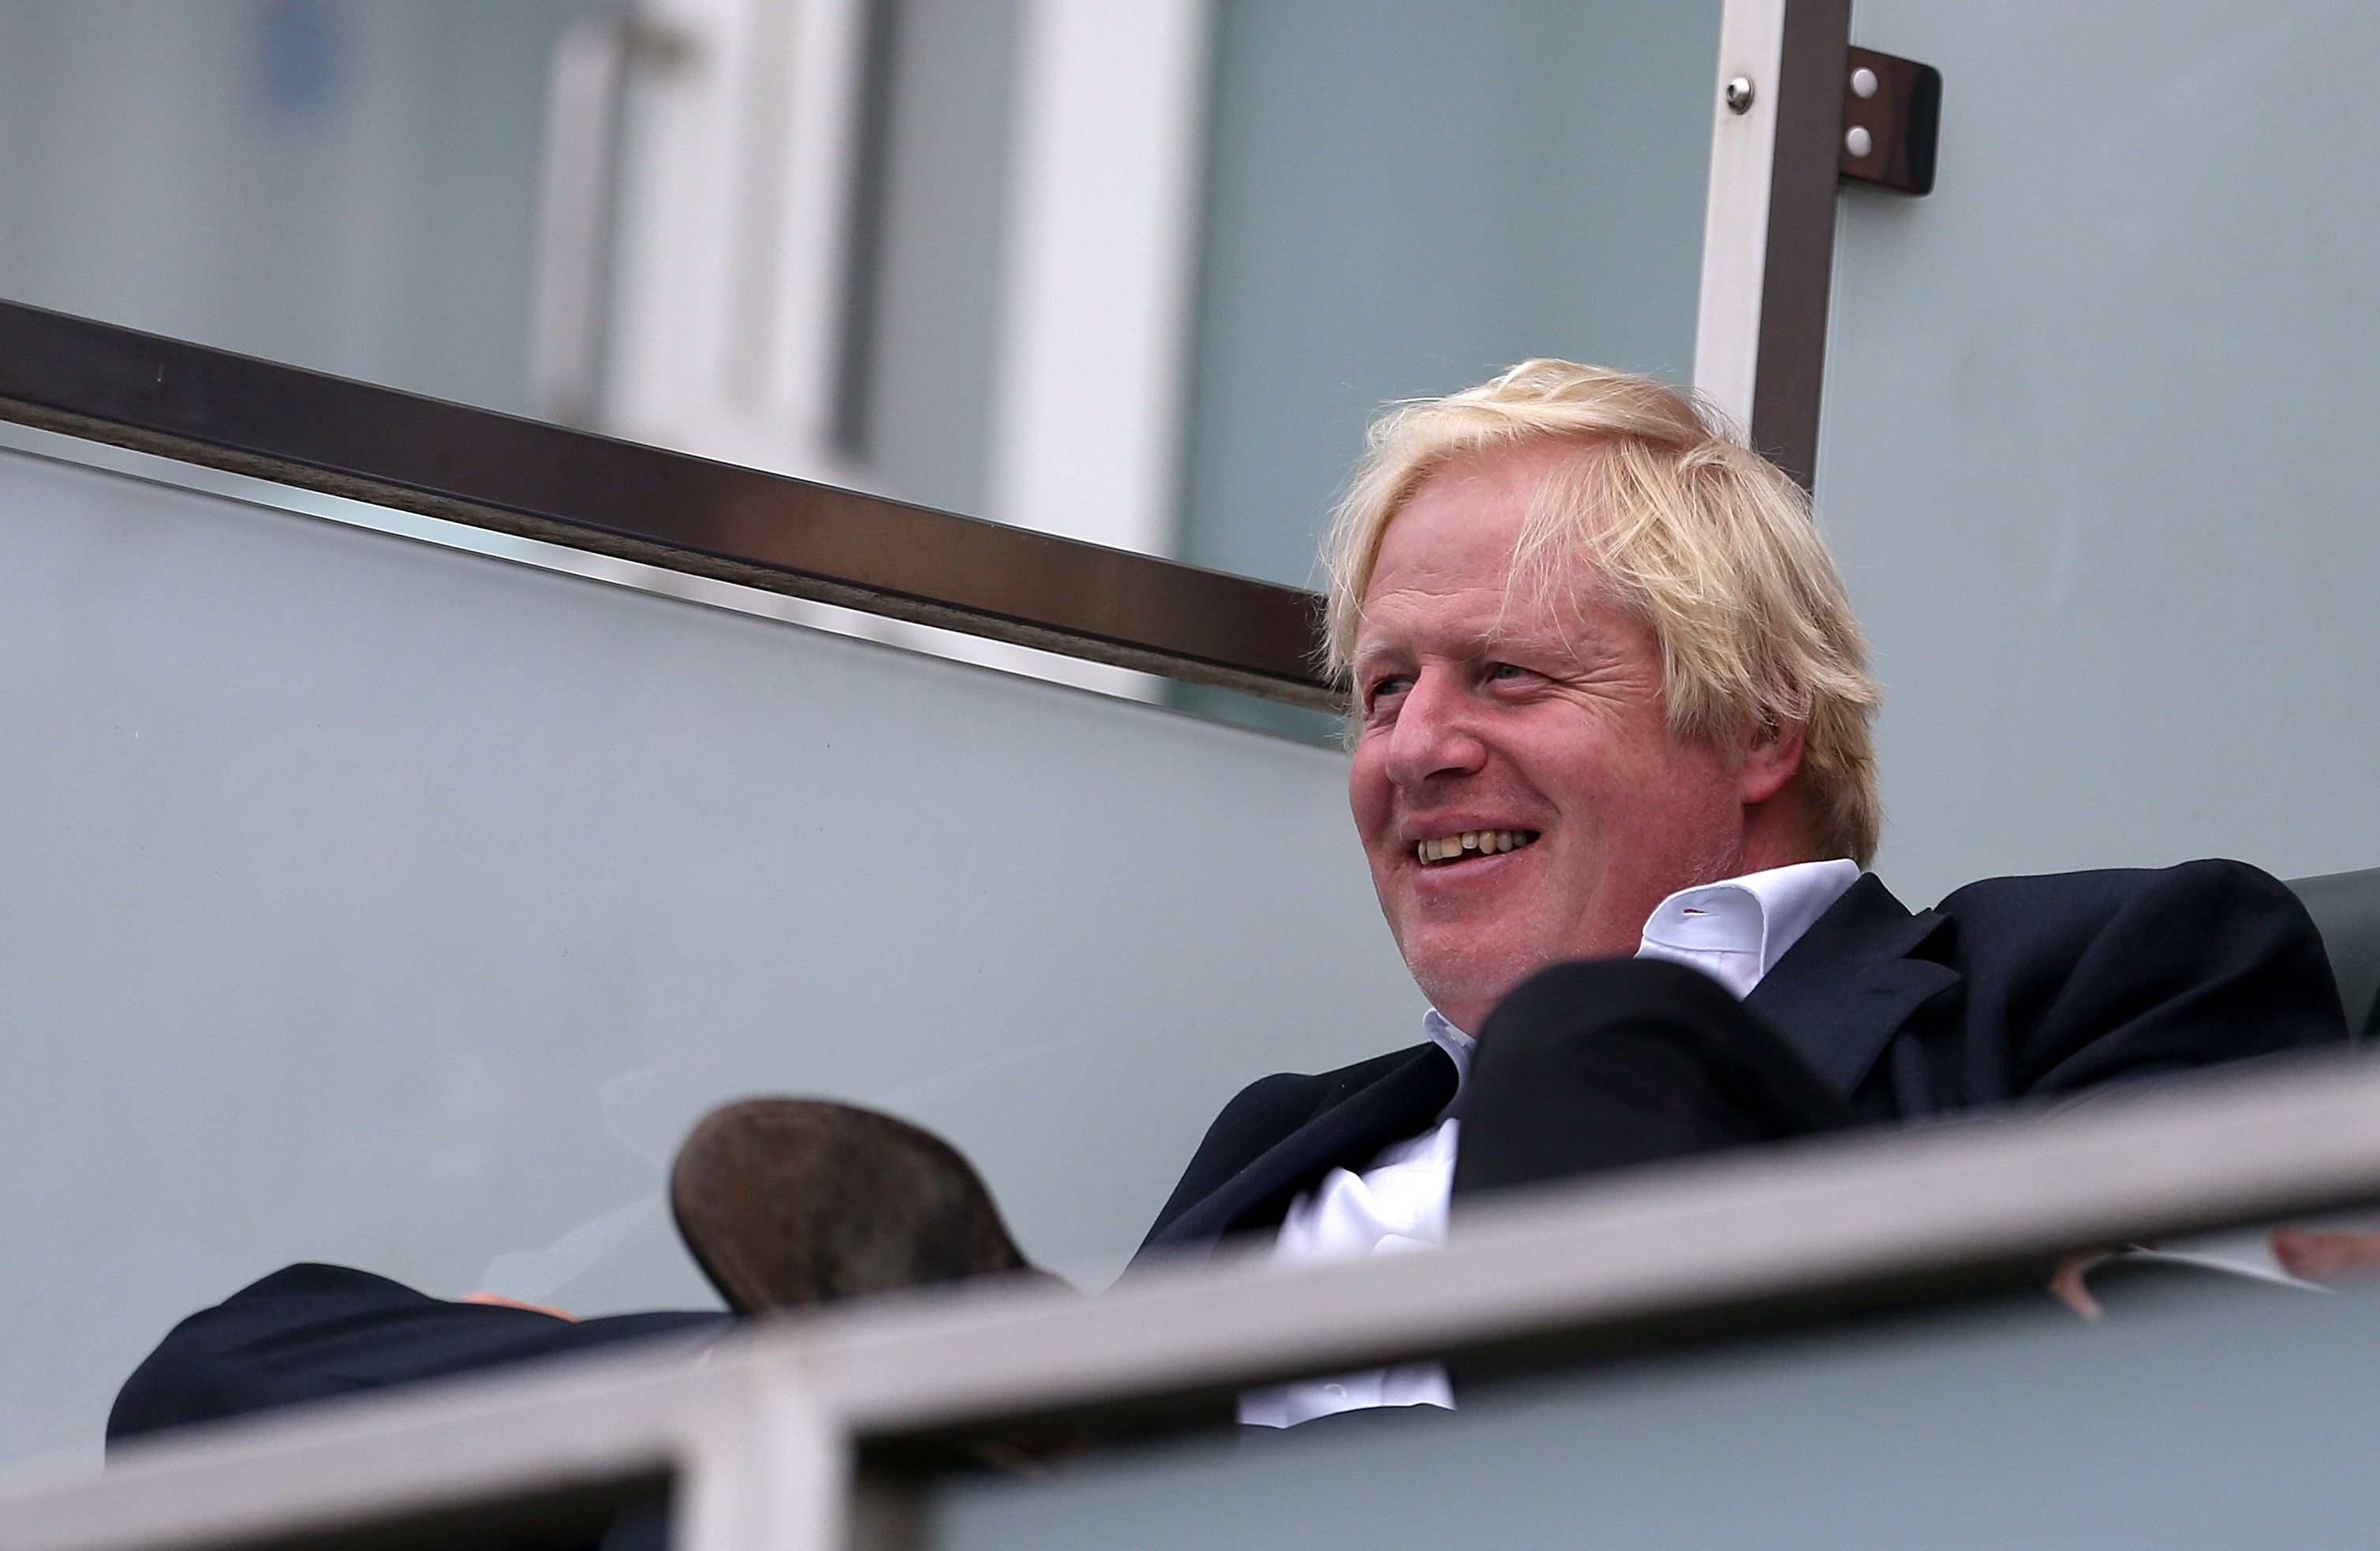 Boris Johnson calls on prime minister to 'chuck Chequers'